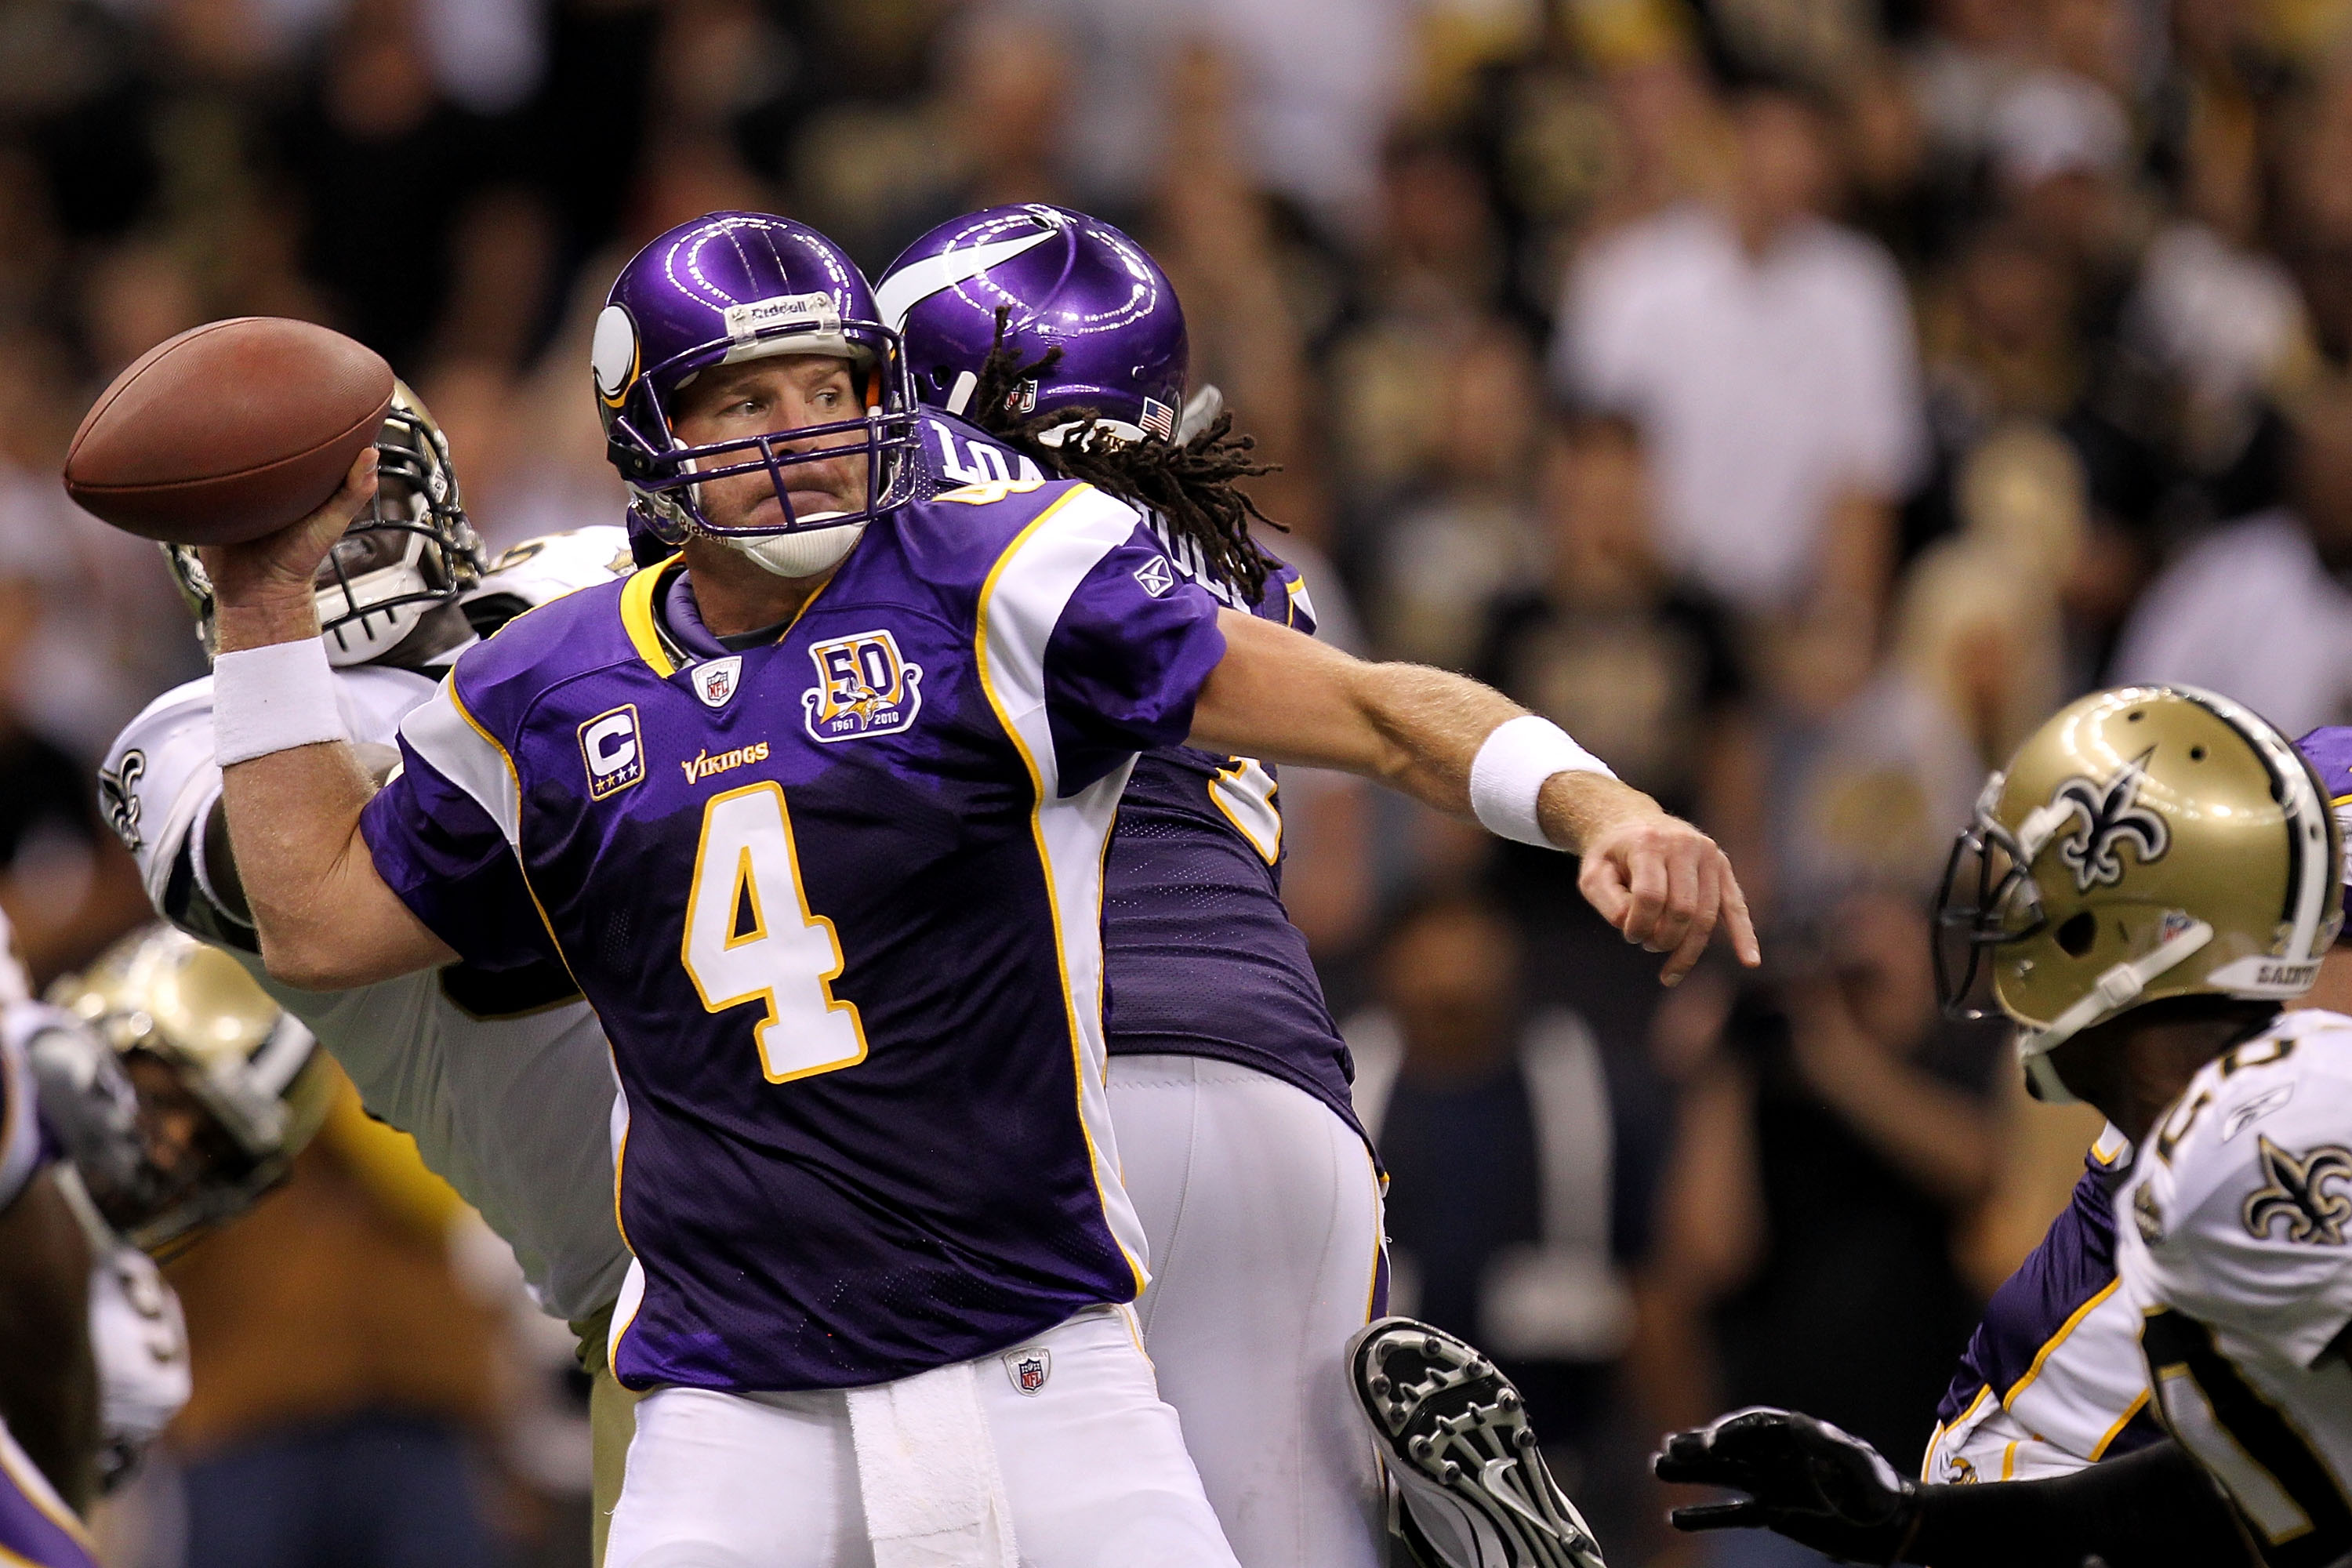 NEW ORLEANS - SEPTEMBER 09:  Quarterback Brett Favre #4 of the Minnesota Vikings throws a pass in the fourth quarter against the New Orleans Saints at Louisiana Superdome on September 9, 2010 in New Orleans, Louisiana. The Saints won 14-9.  (Photo by Rona